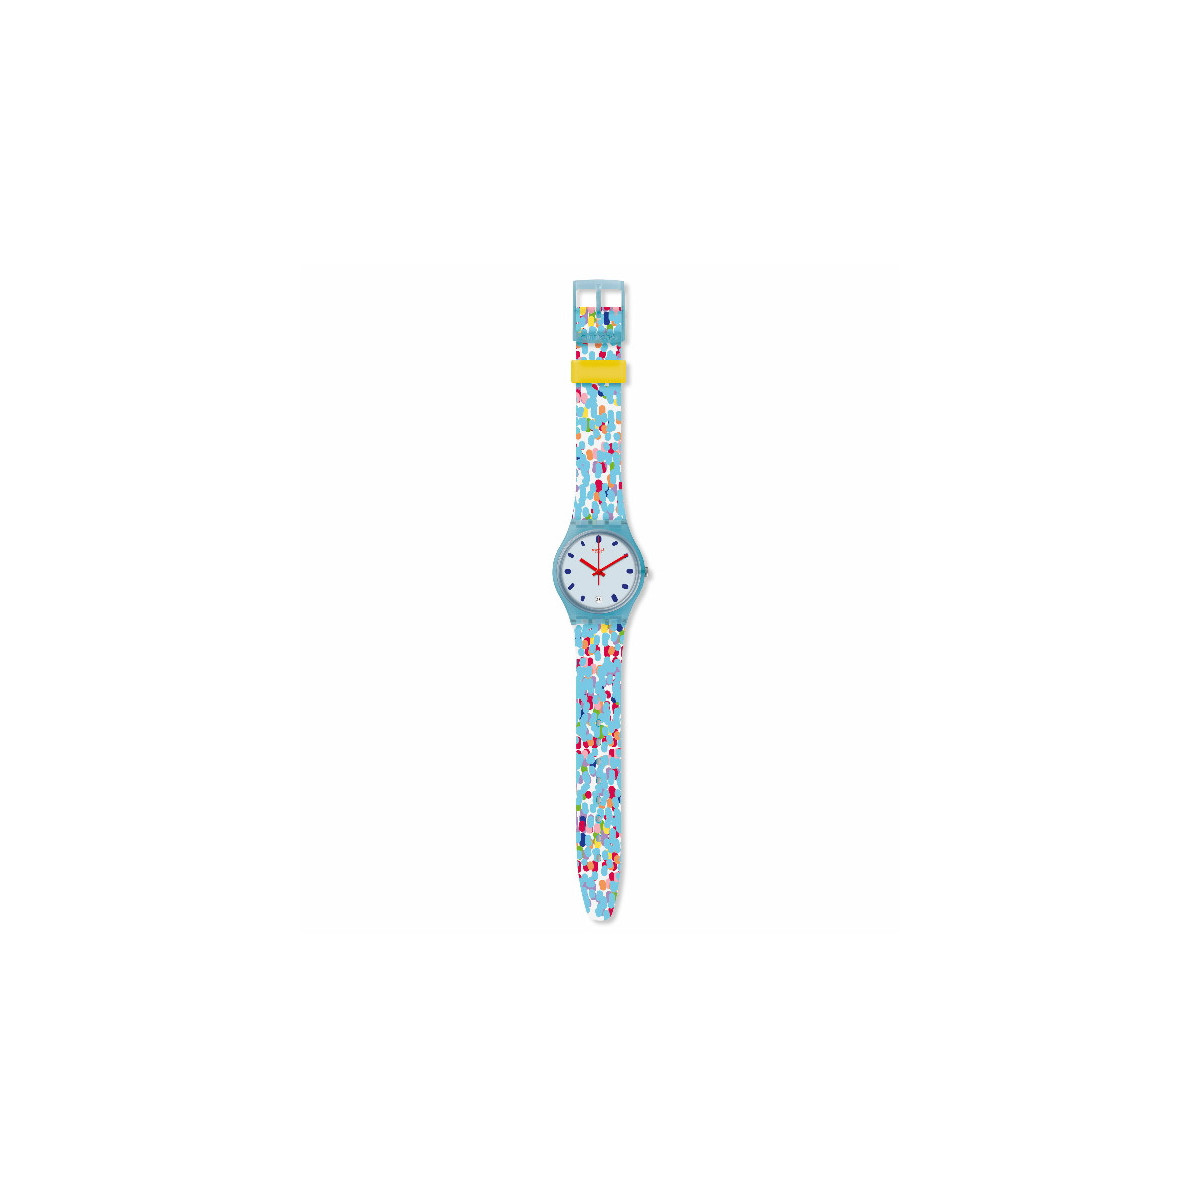 PRIKKET_GS401_SWATCH_OUTLET_50%